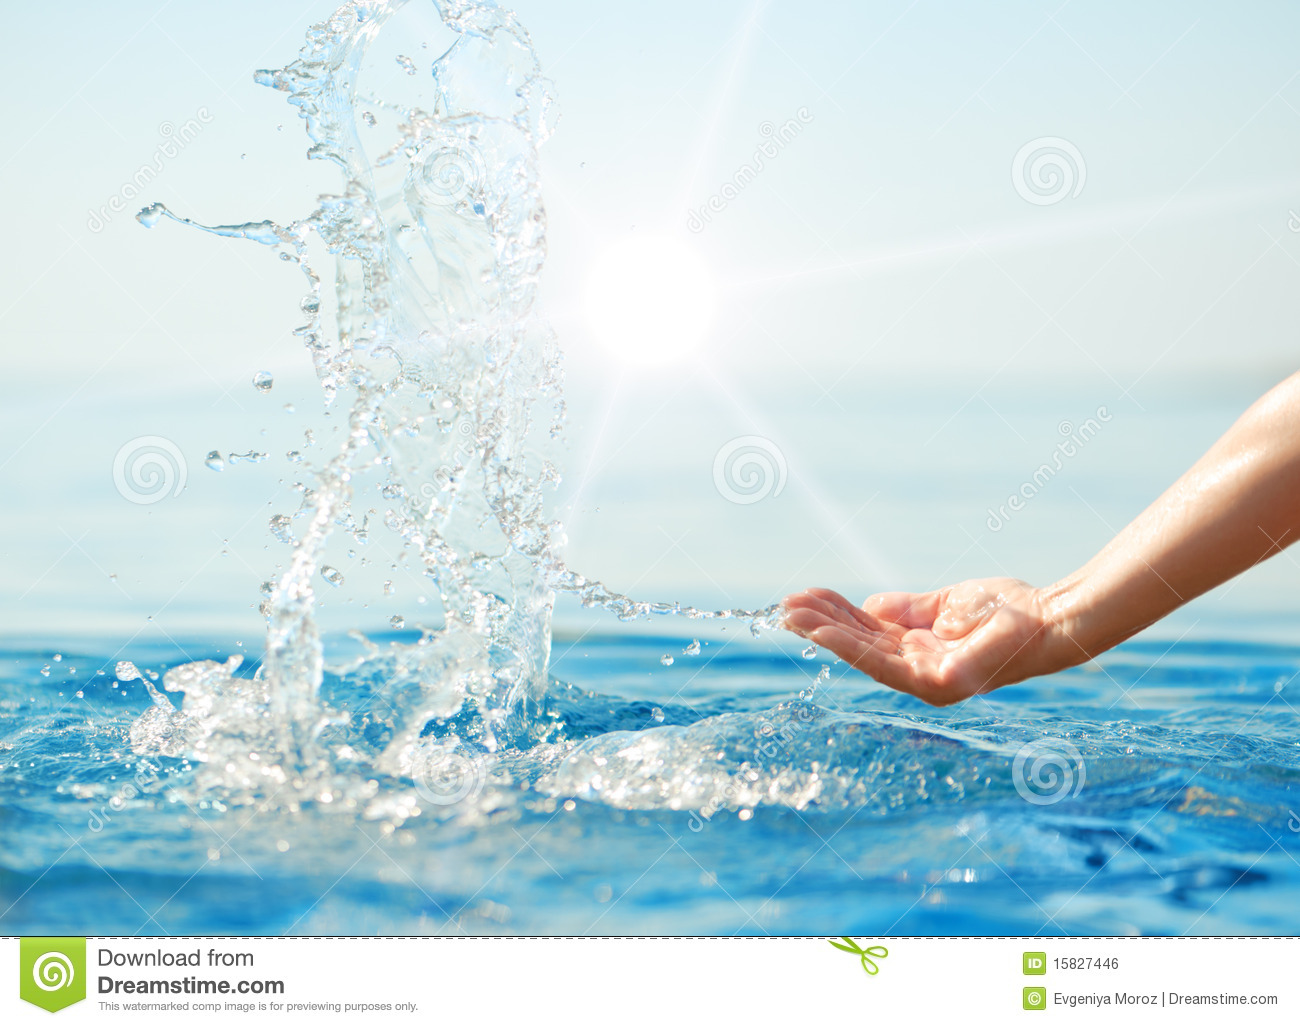 Hand splashing clean water on blue sea background in sun rays. Purity ... Water In Hand